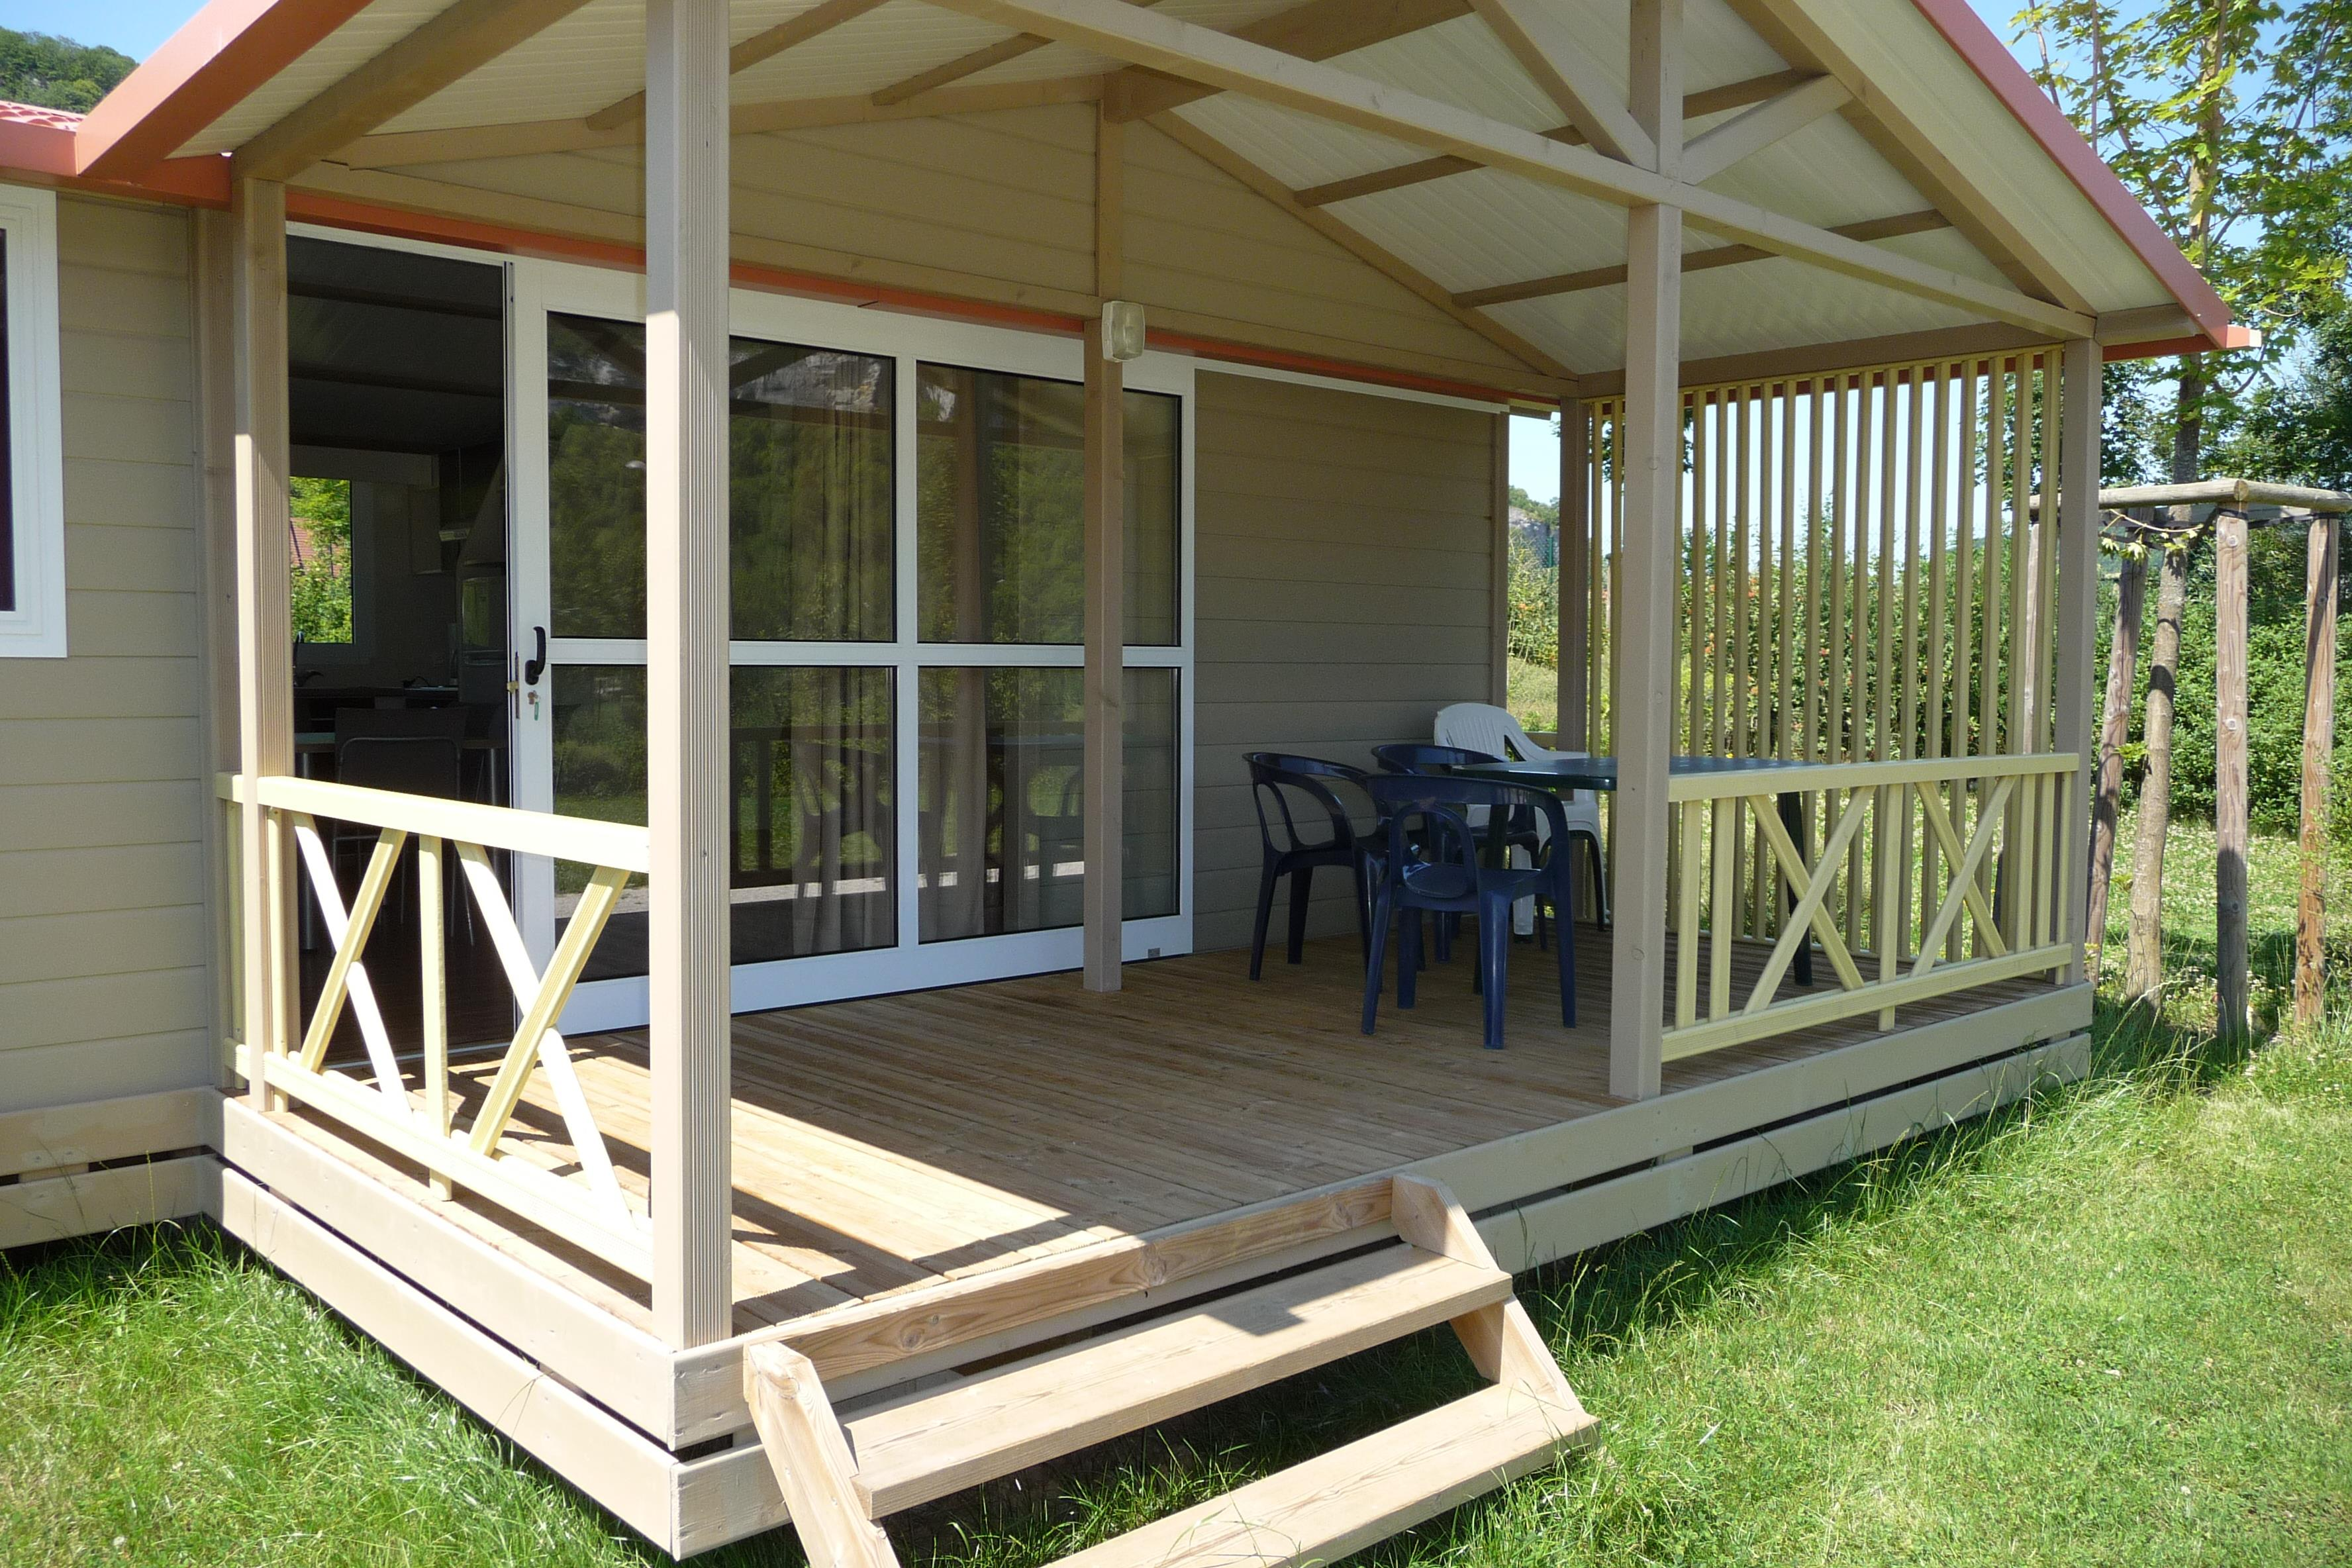 Location - Cottage Comtois, 35M², 3 Chambres, Le Chalet Familial - Camping La Roche d'Ully